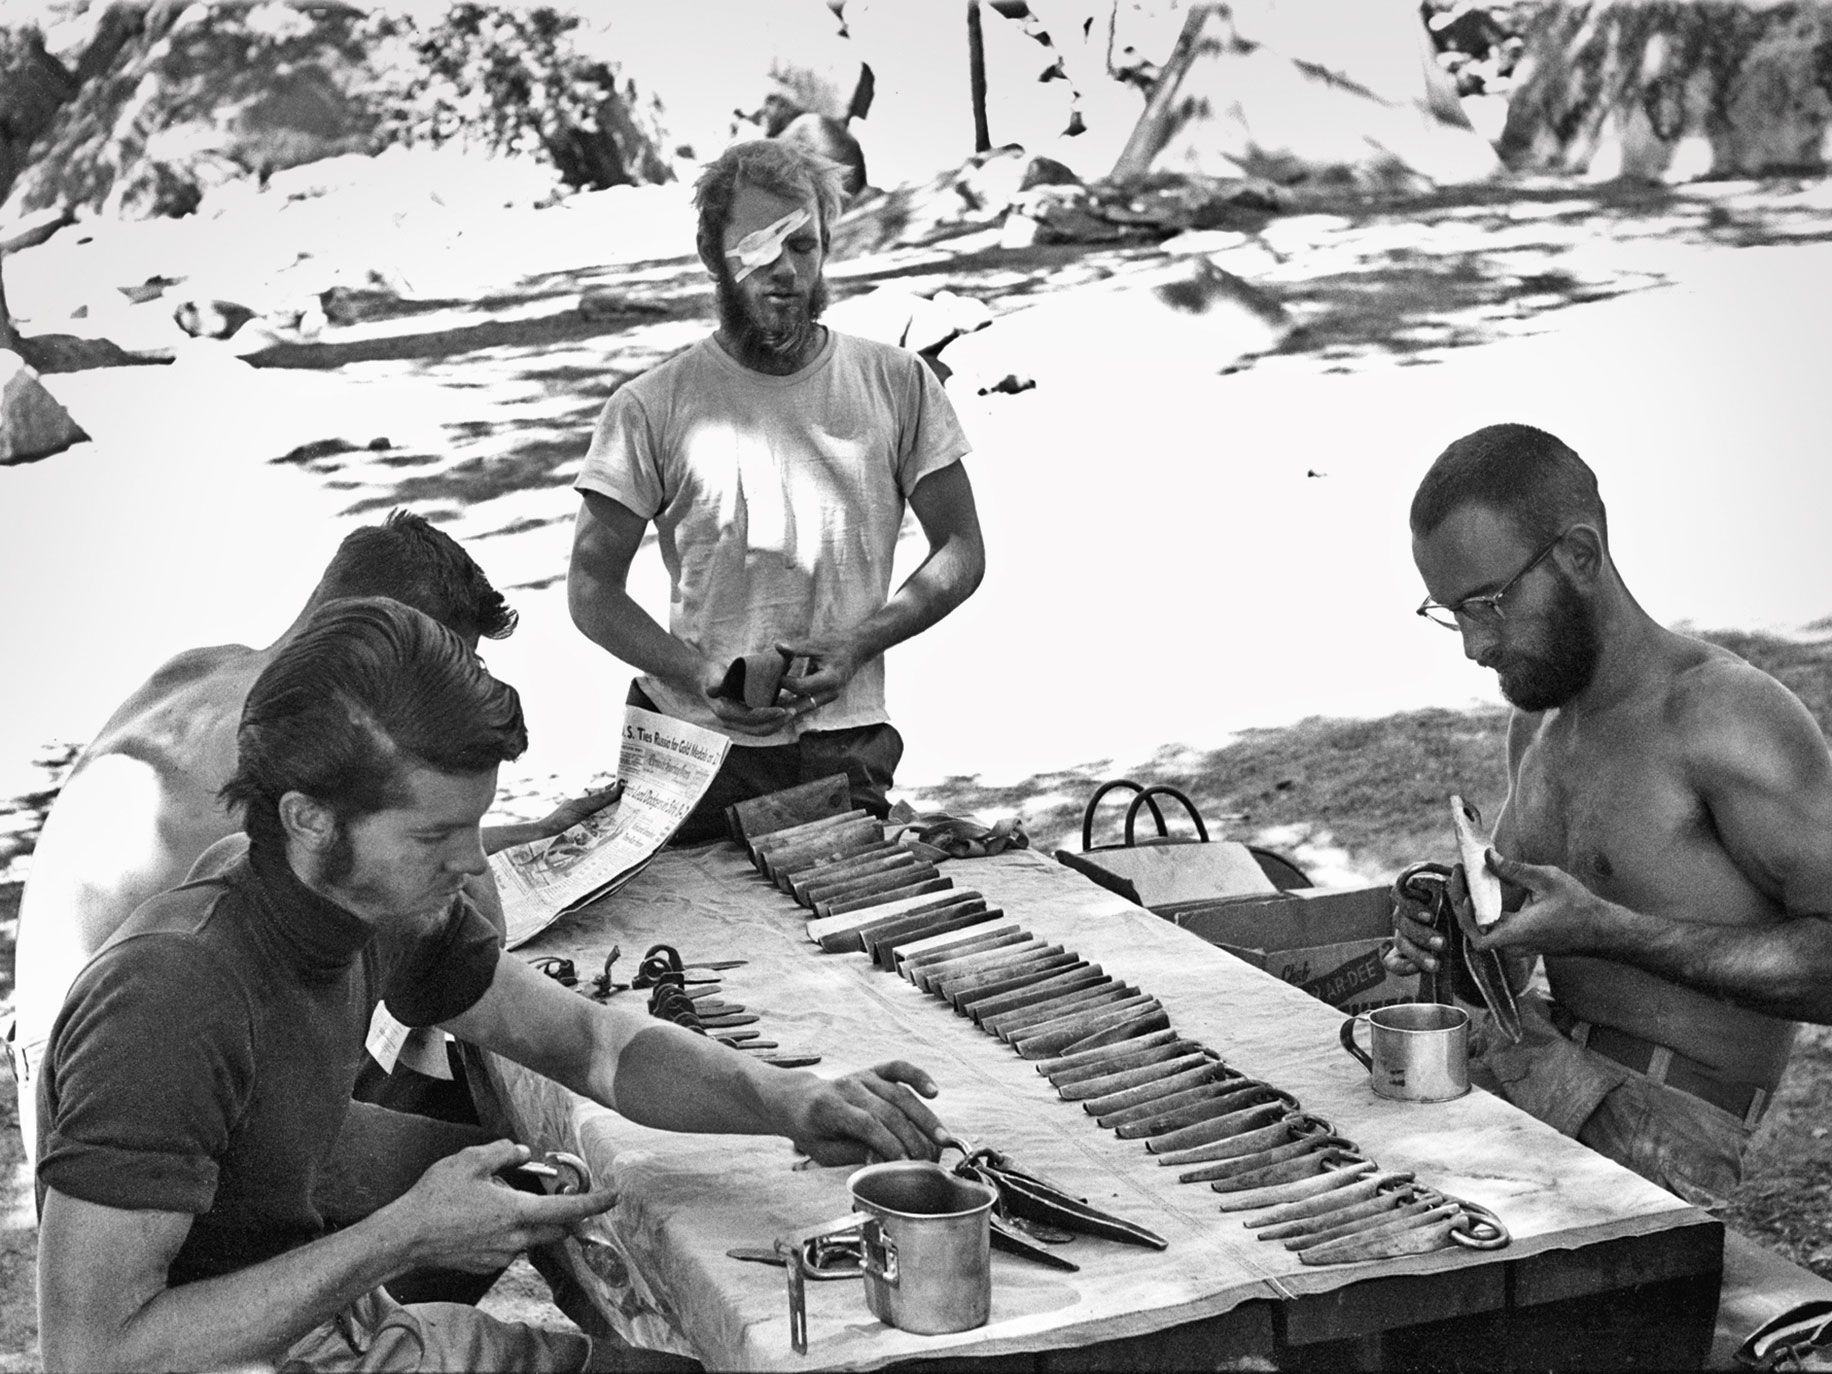 Yosemite climbing pioneers Joe Fitschen, Chuck Pratt and Robbins sorting gear for a 1960 climb of the Nose of El Capitan.